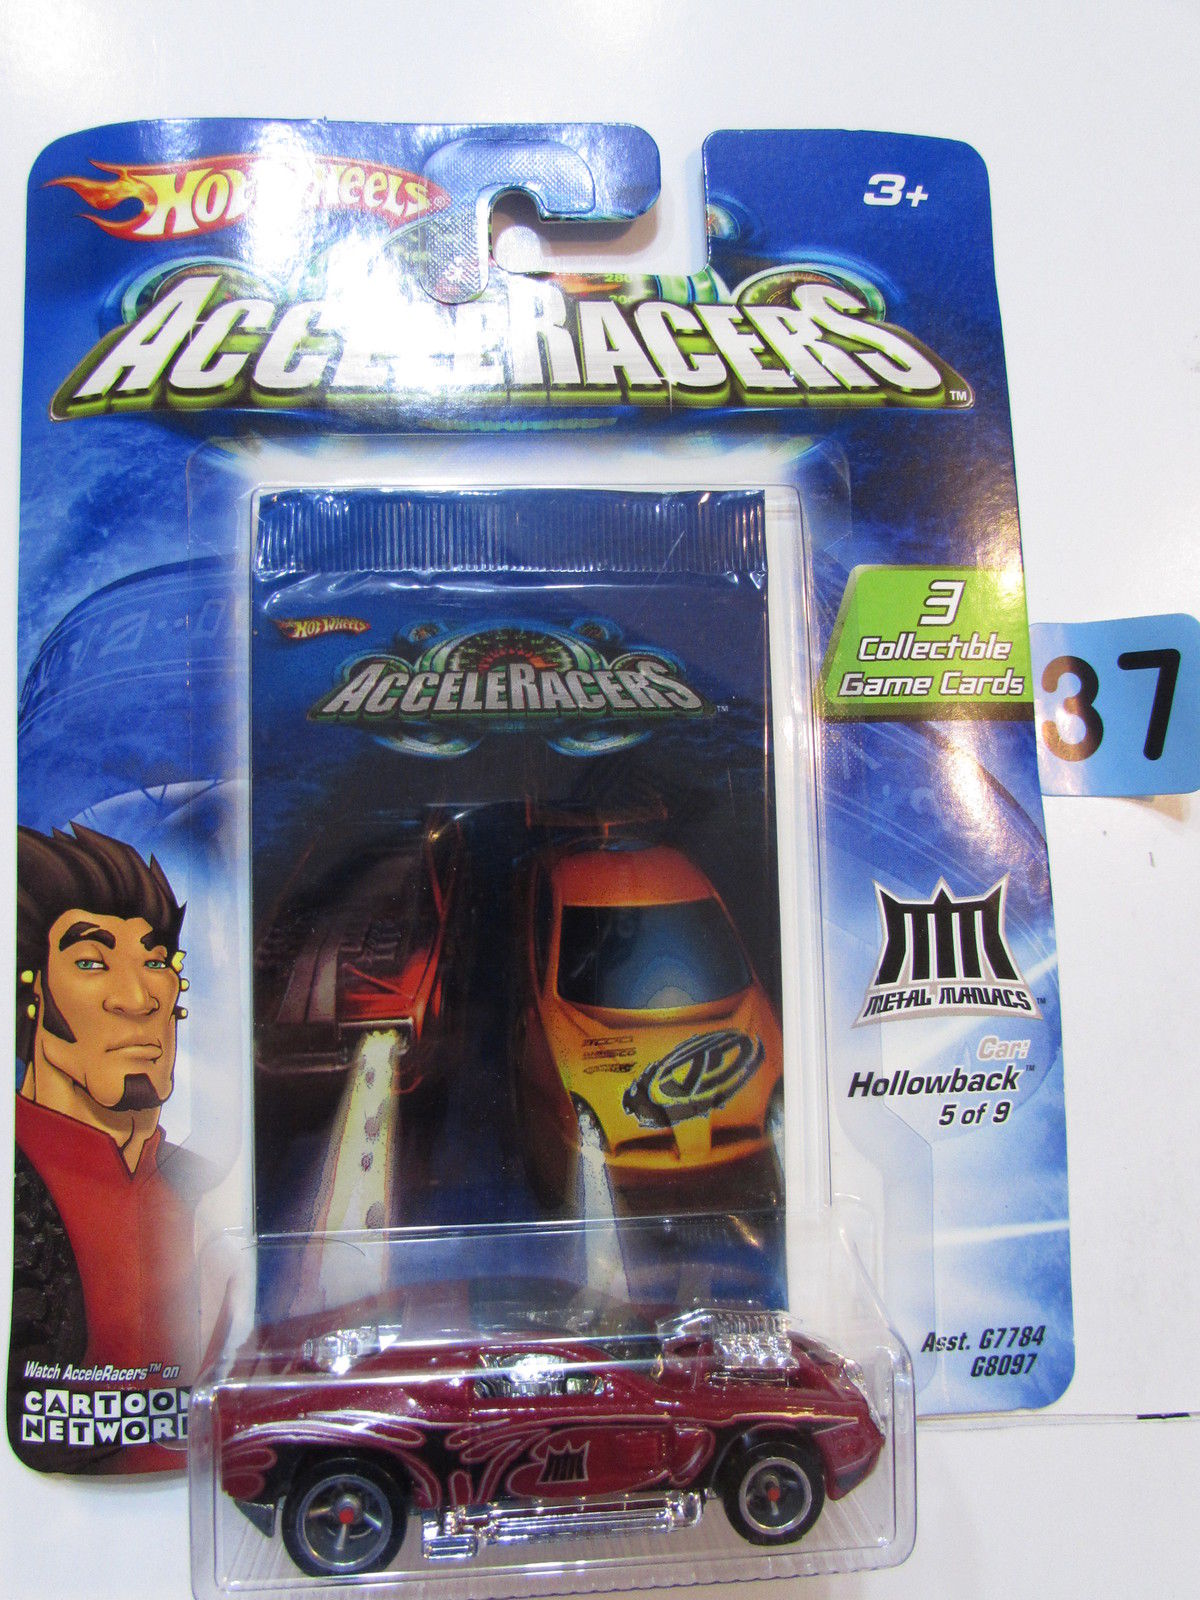 2004 HOT WHEELS ACCELERACERS HOLLOWBACK #5/9 - 3 COLLECTIBLE GAME CARDS